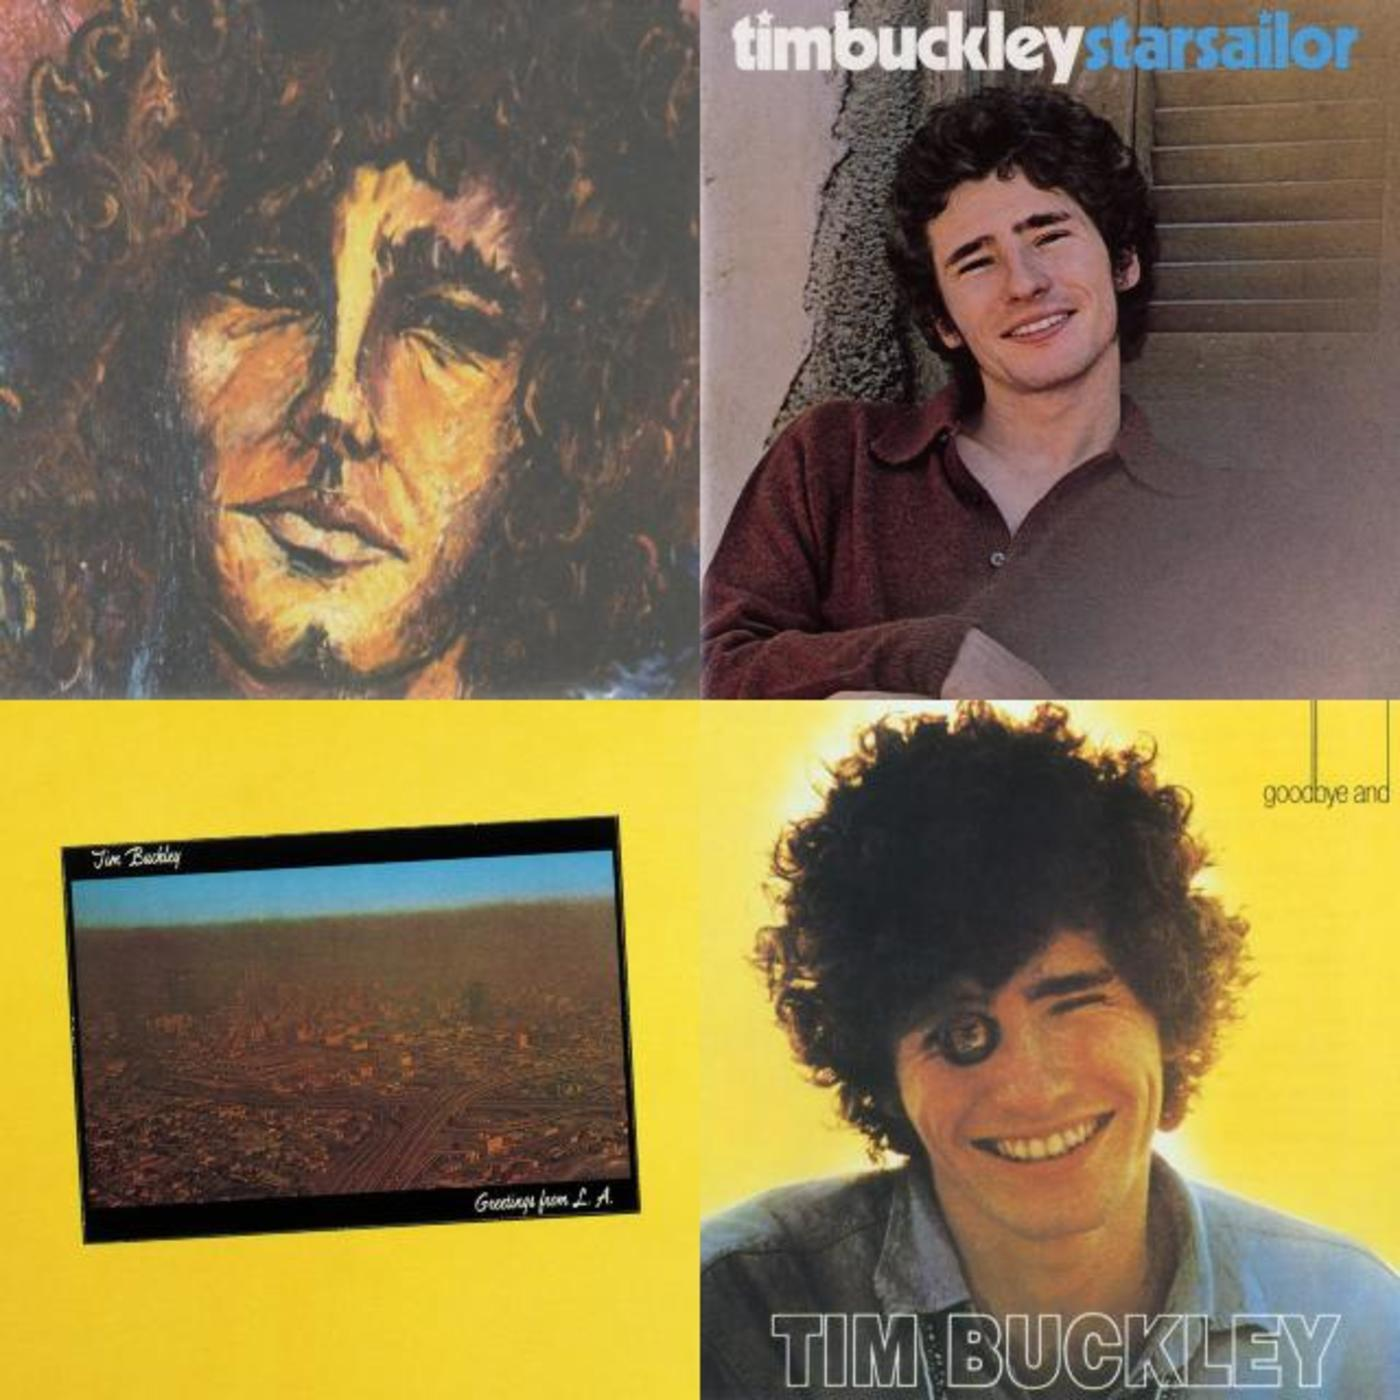 Official Tim Buckley playlist - Song To The Siren, Once I Was, Sweet Surrender, Phantasmagoria in Two, Greetings From LA